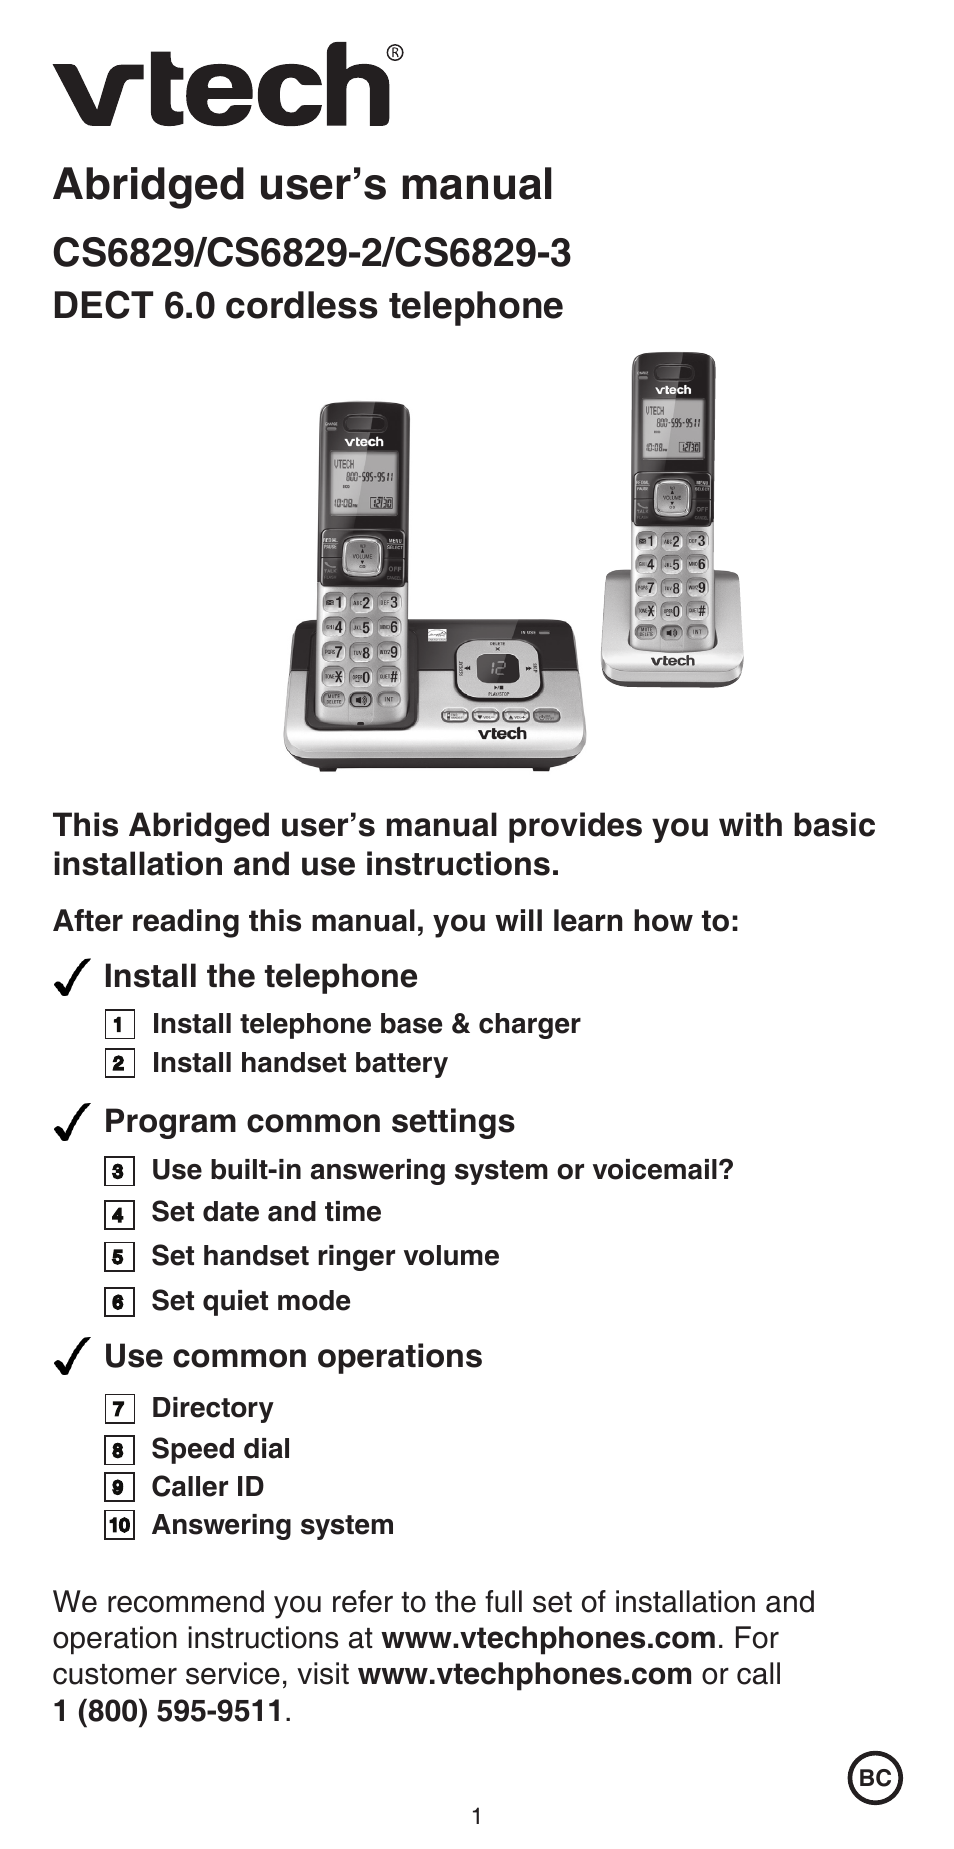 Vtech Cs6829 Abridged Manual User Manual Manual Guide